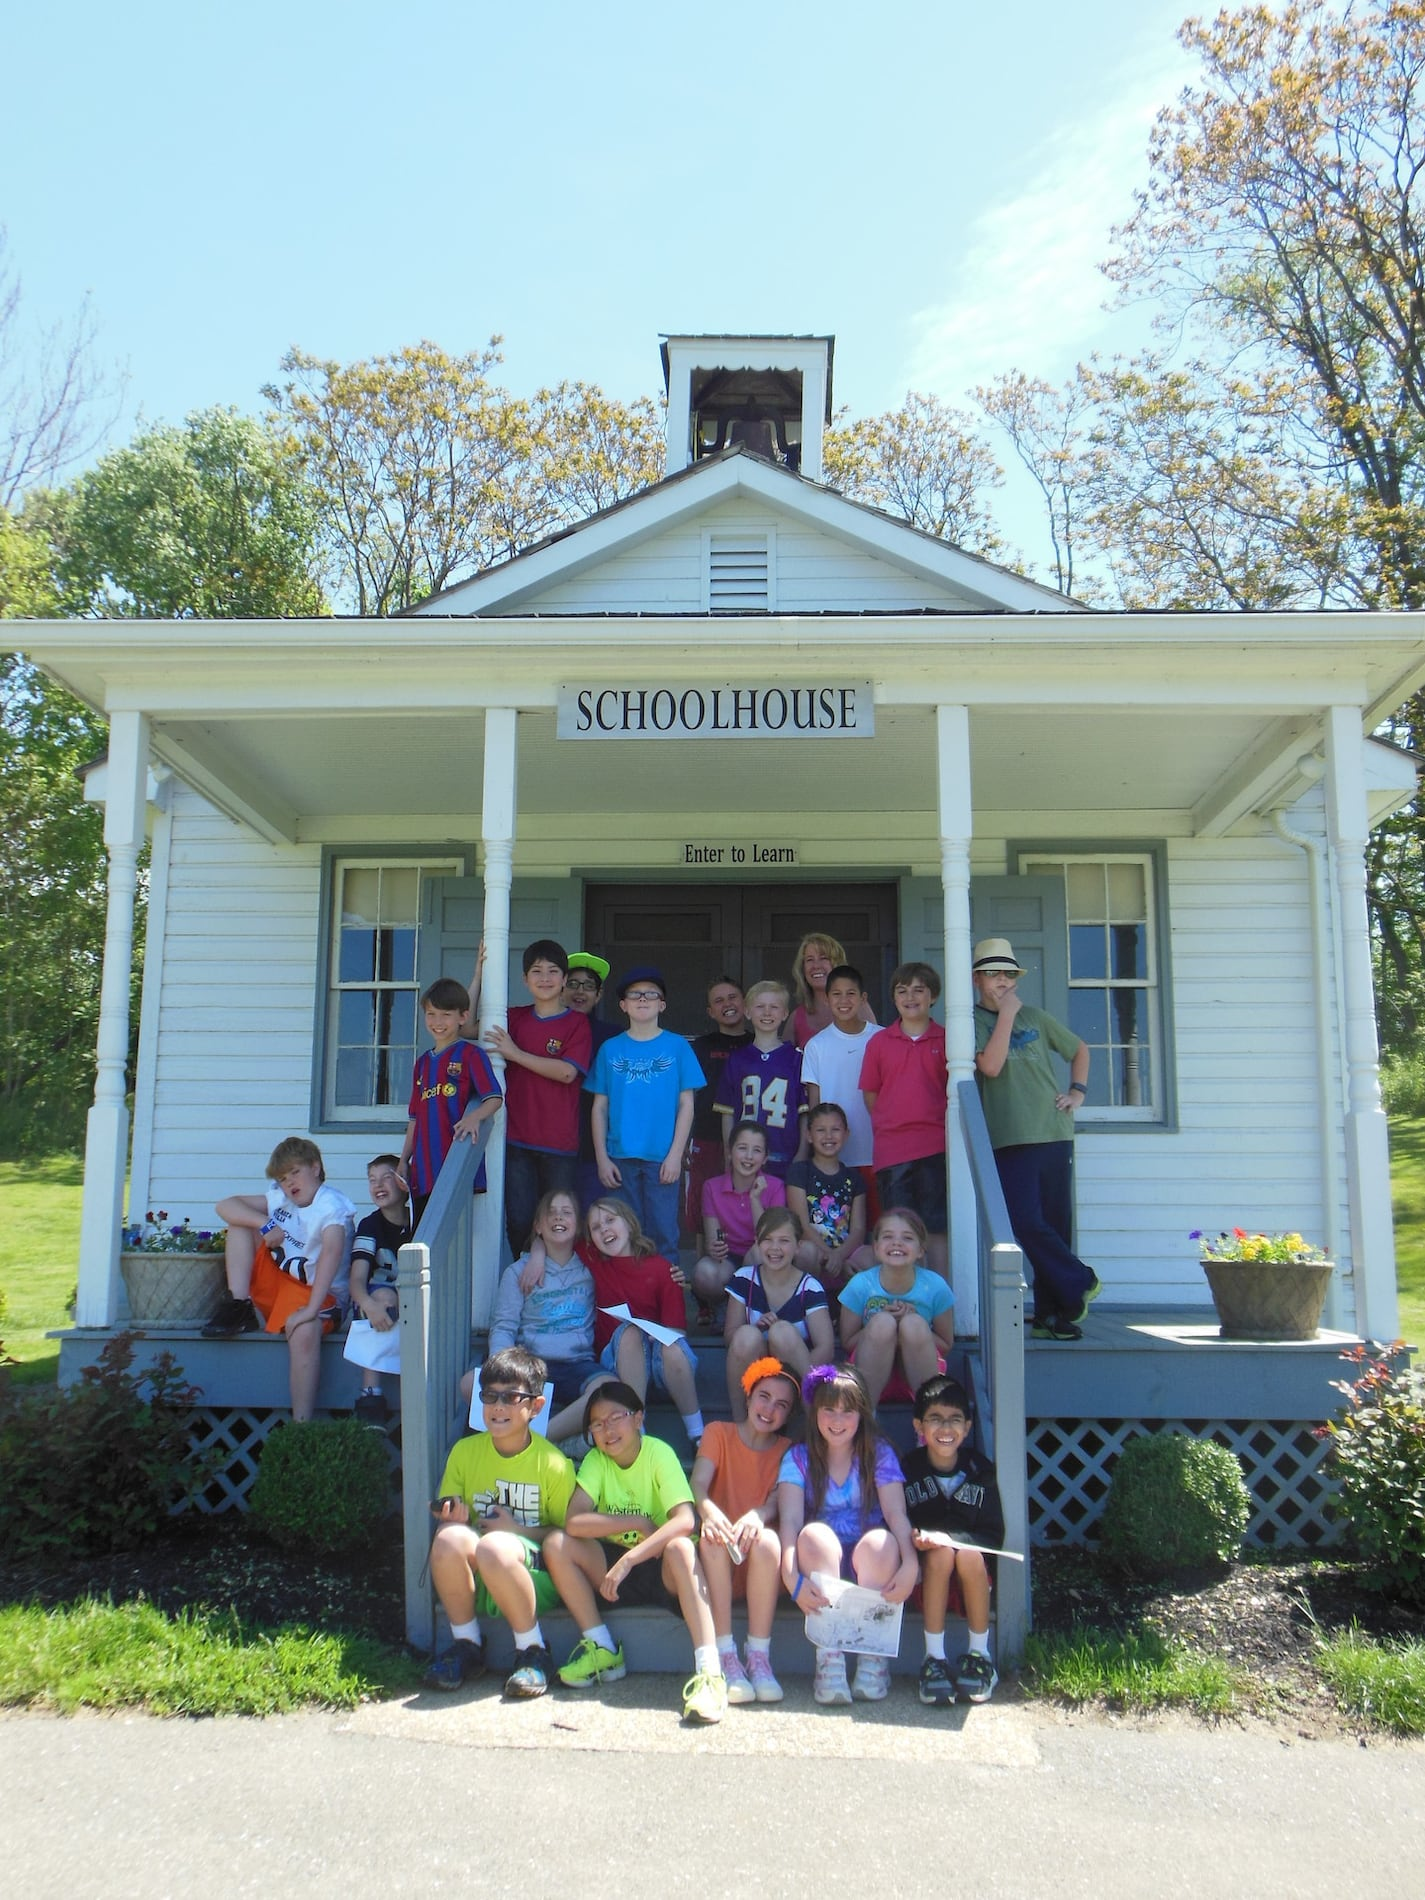 Amish schoolhouse with students